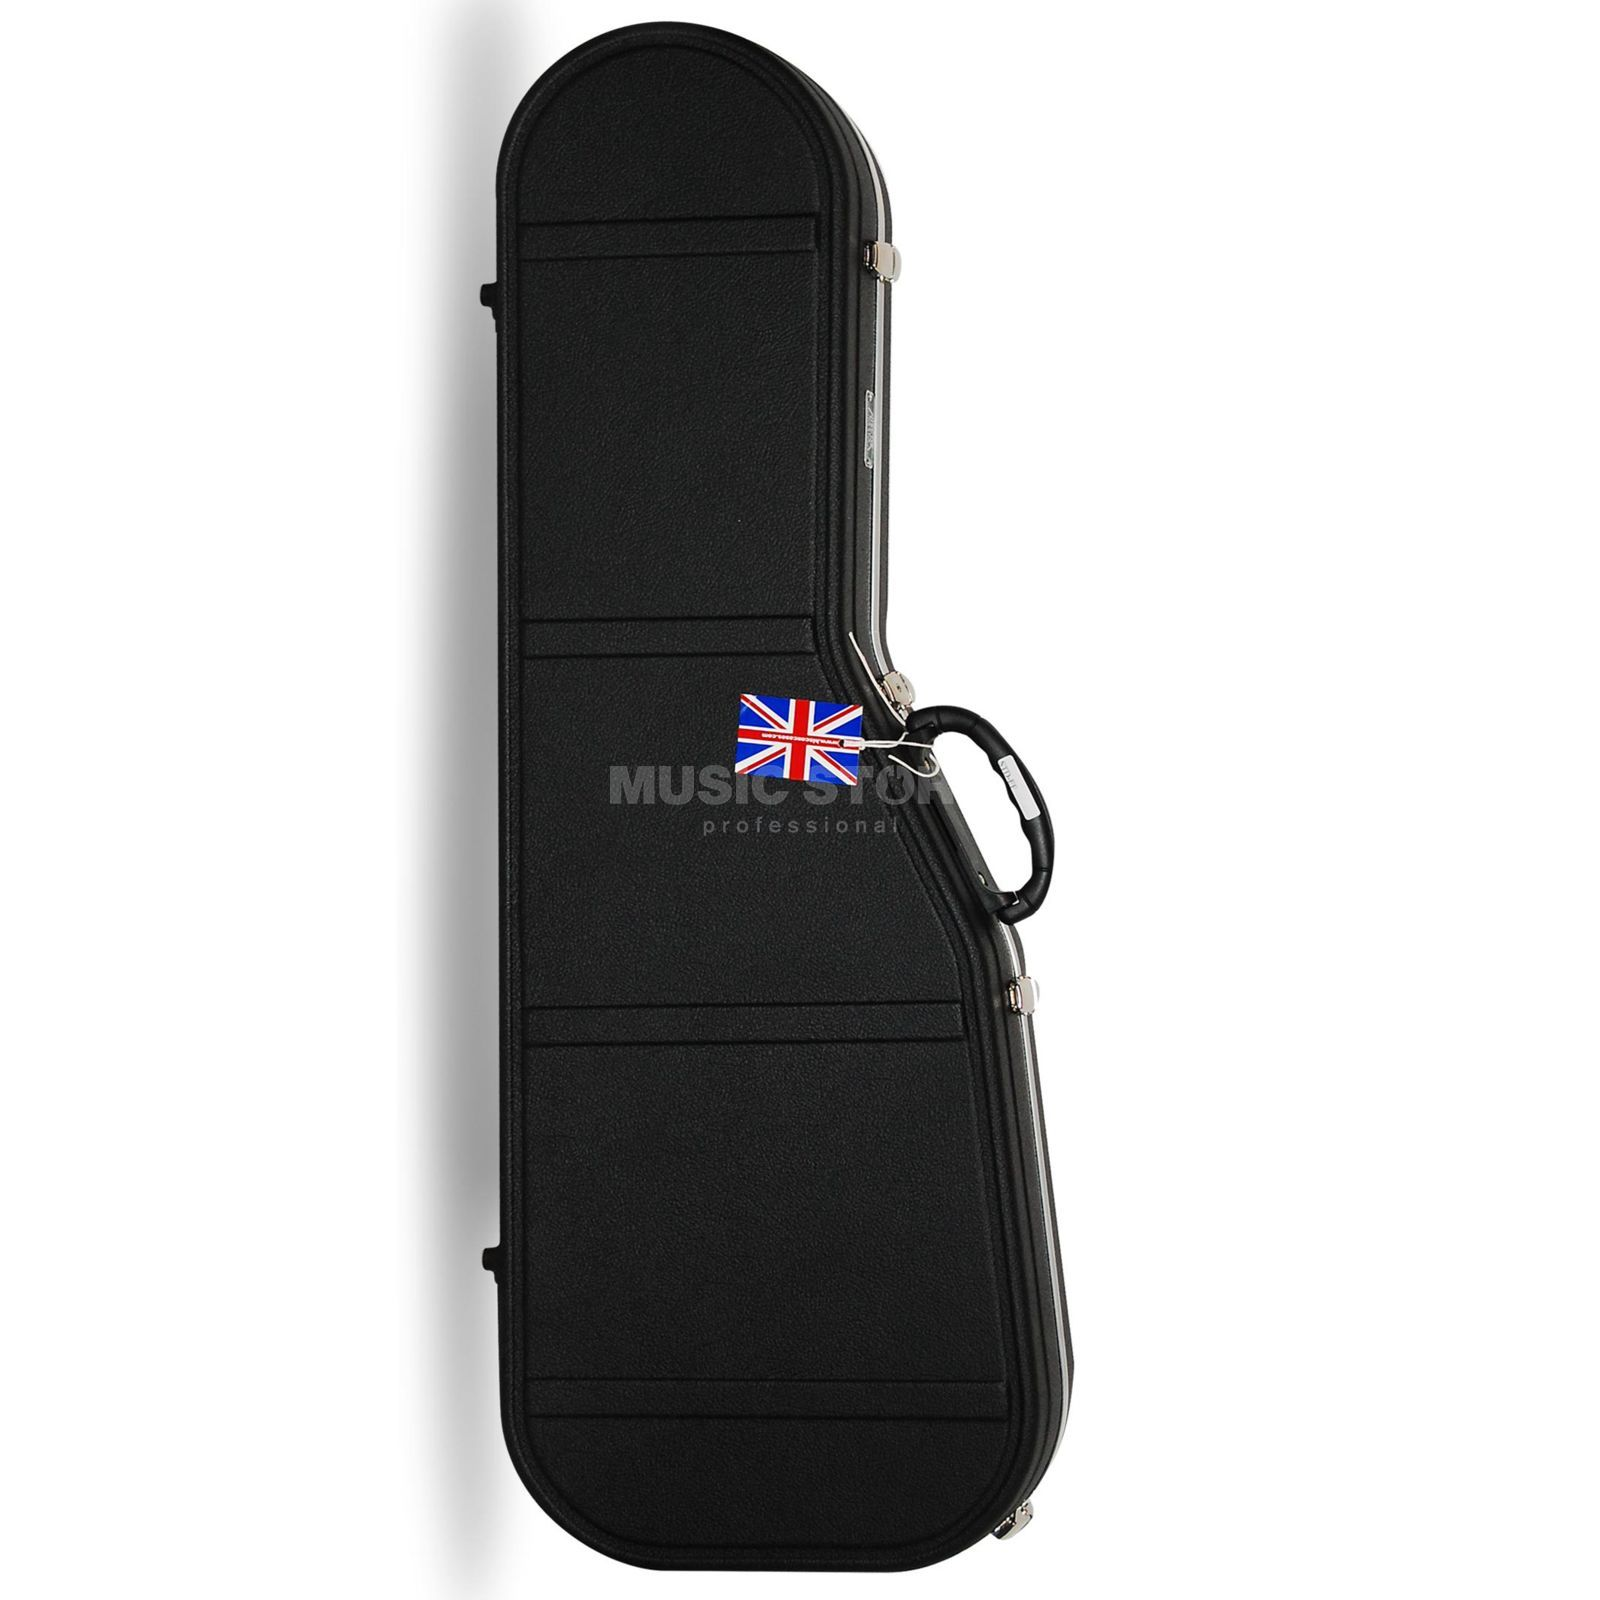 Hiscox STD-EG Electric Guitar Case Produktbild